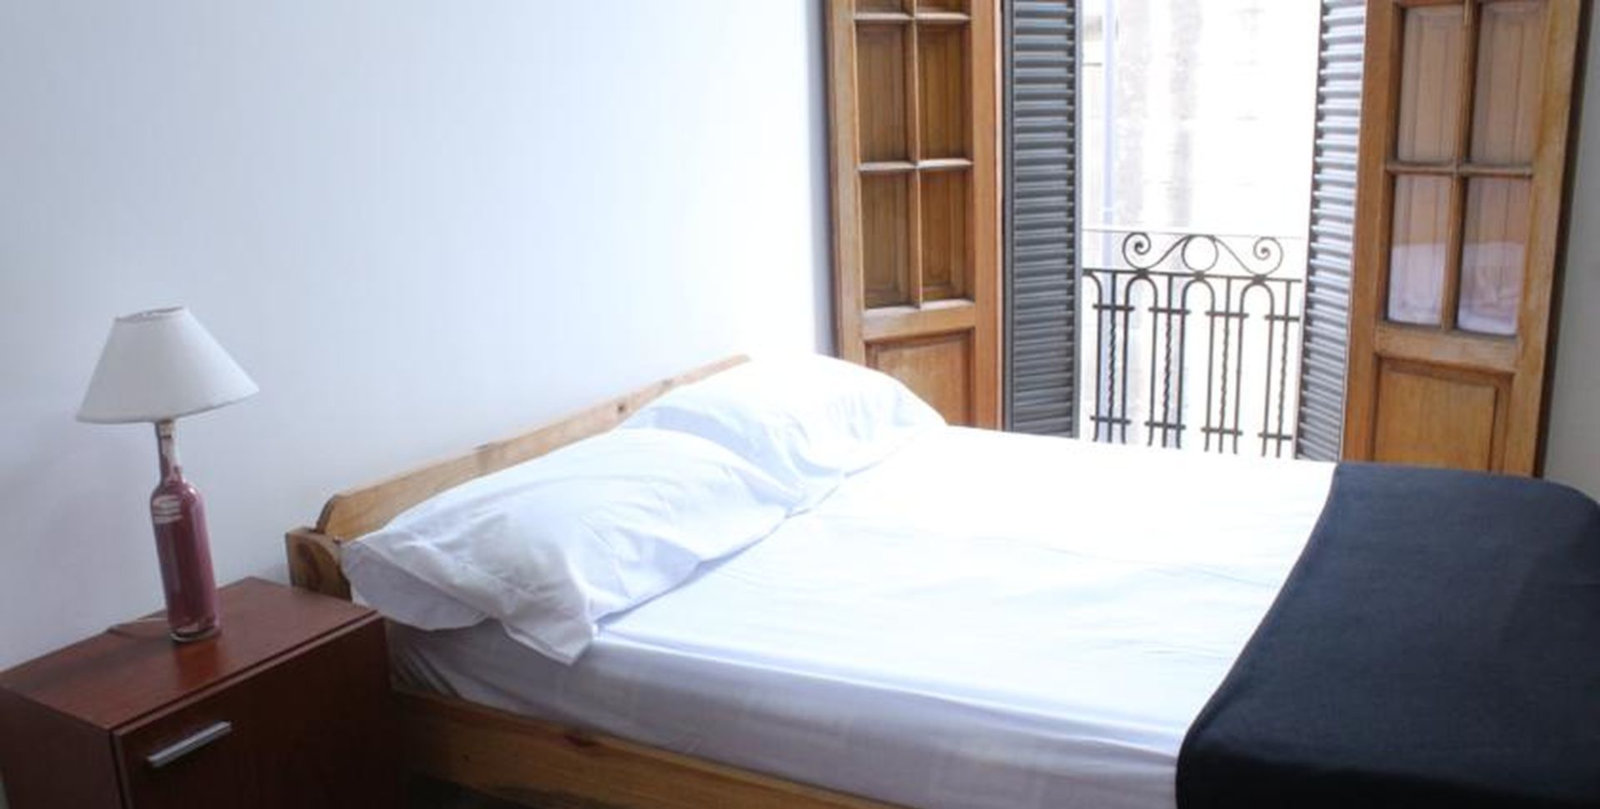 The 531 Hostel is an excellent budget option for gay travellers to Córdoba, Argentina.